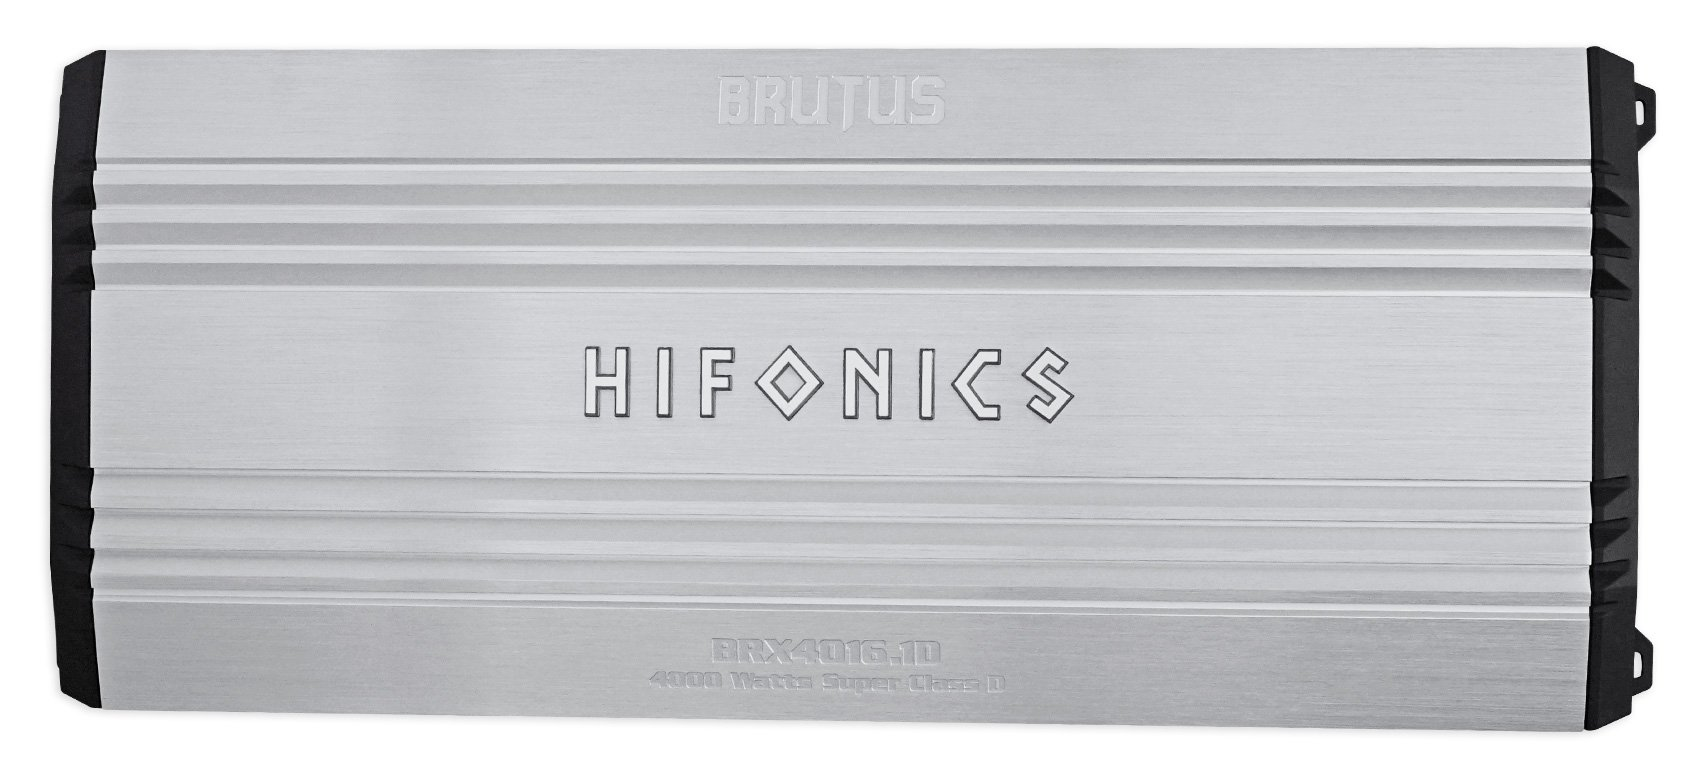 Hifonics BRX4016.1D Brutus 4000 Watt Mono Amplifier Car Audio Class-D Amp by Hifonics (Image #2)